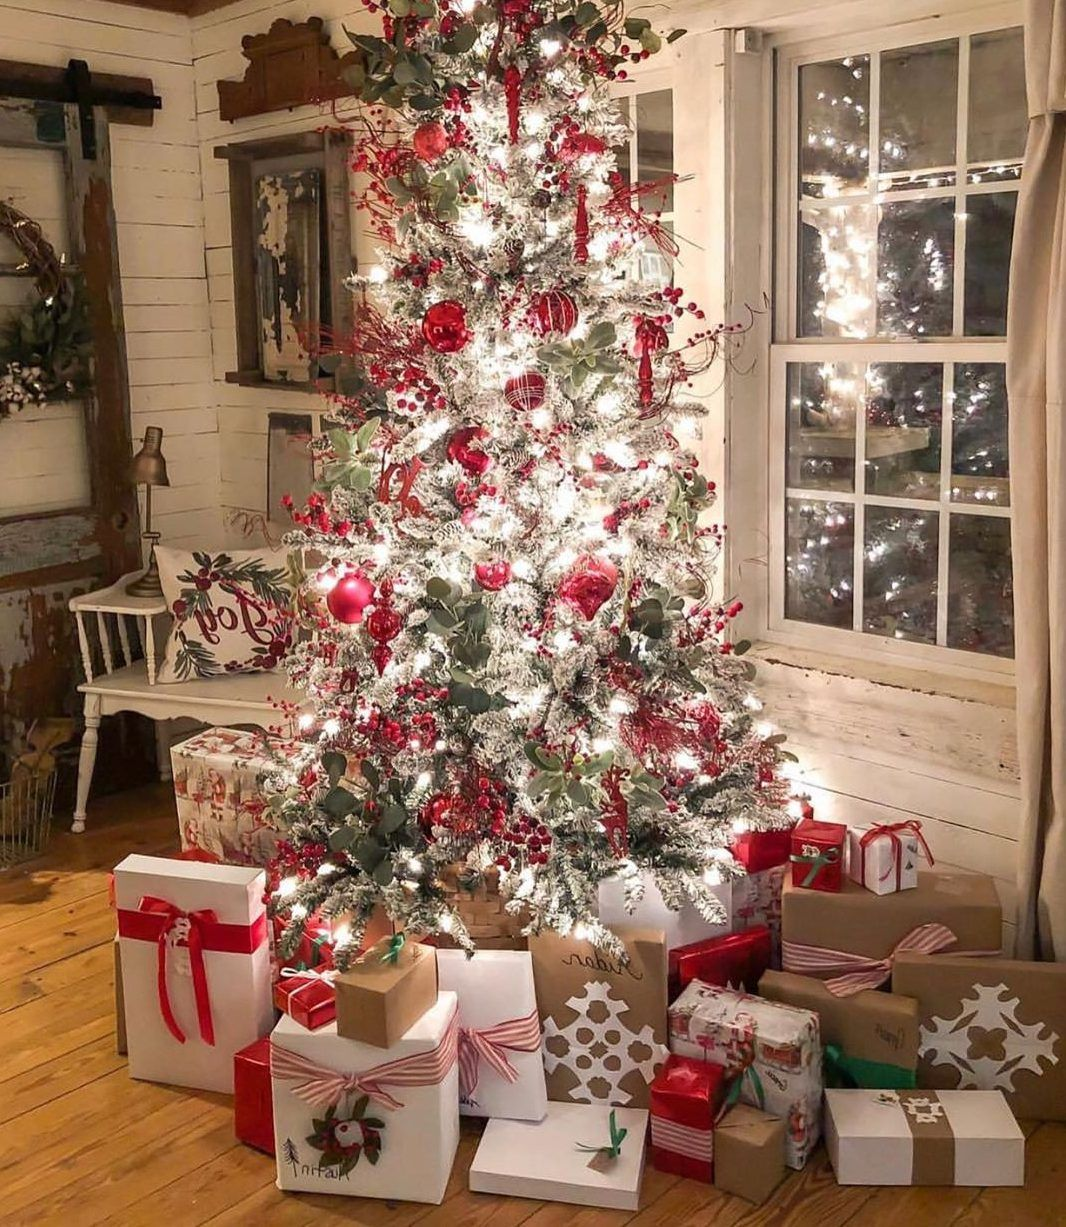 50 Christmas Decorating Ideas For A Joyful Holiday Home Do It Before Me Christmas House Decorations Inside Christmas Home Christmas Decorations Cheap